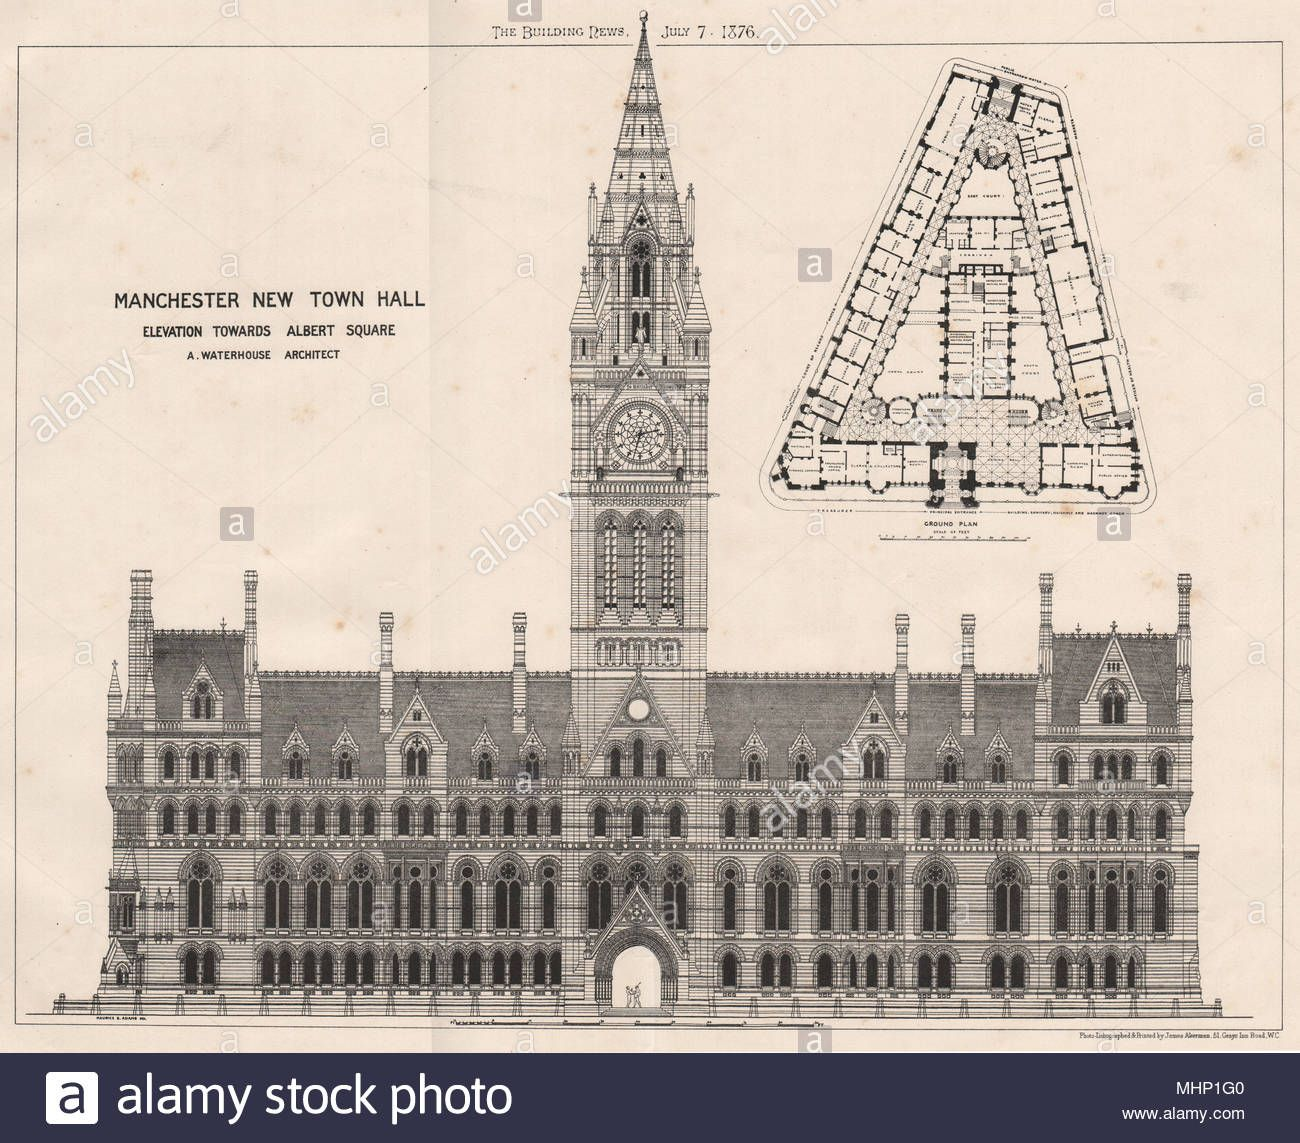 Manchester New Town Hall Elevation Towards Albert Squre A Waterhouse 1876 Stock Photo Manchester Town Hall New Town Town Hall